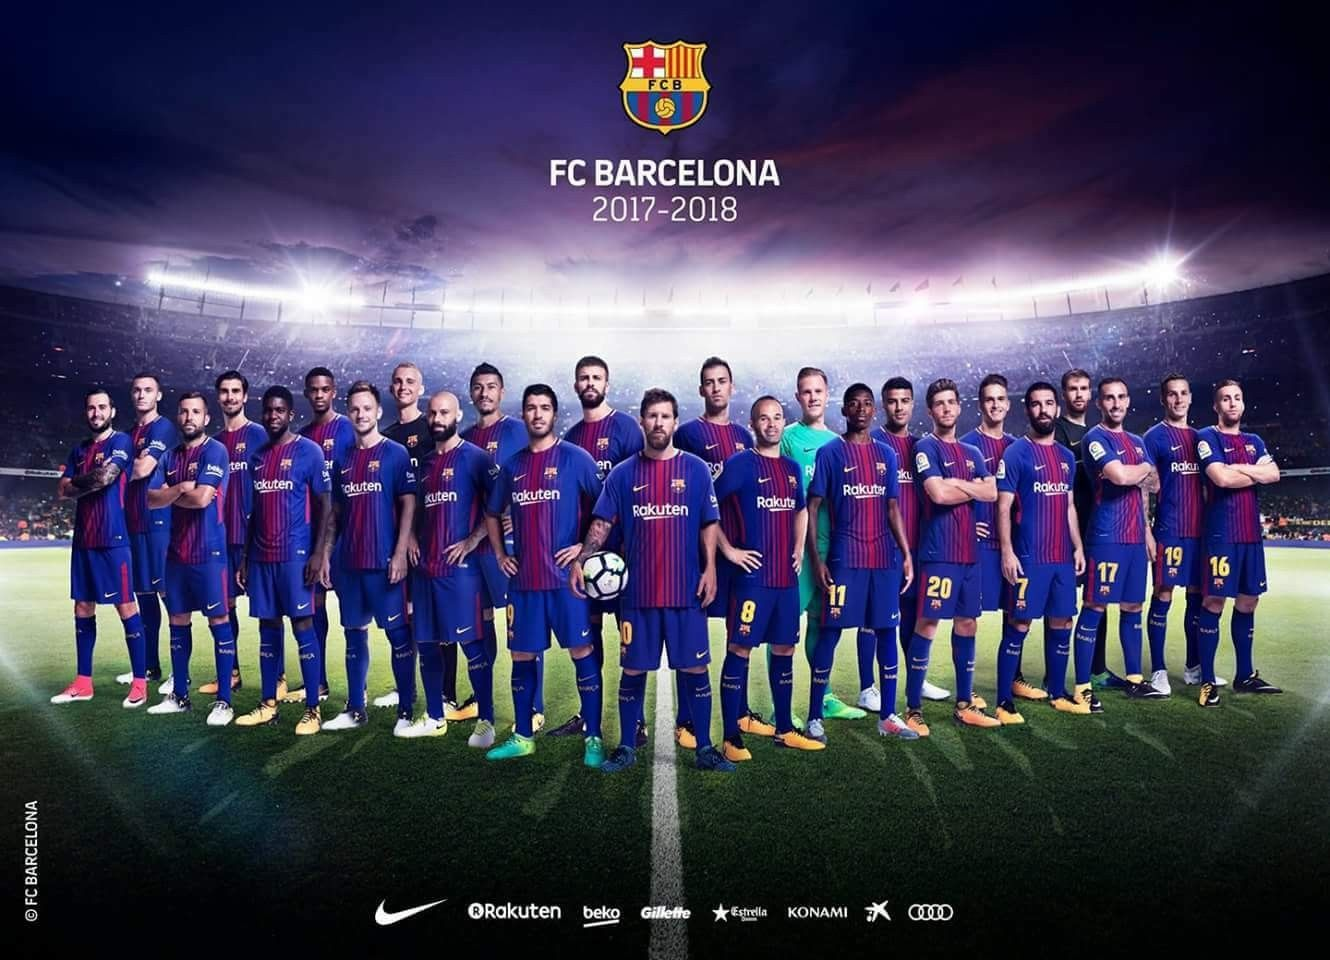 Fc barcelona wallpaper fcb bara 2017 wallpaper fcb pinterest fc barcelona wallpaper fcb bara 2017 wallpaper stopboris Choice Image